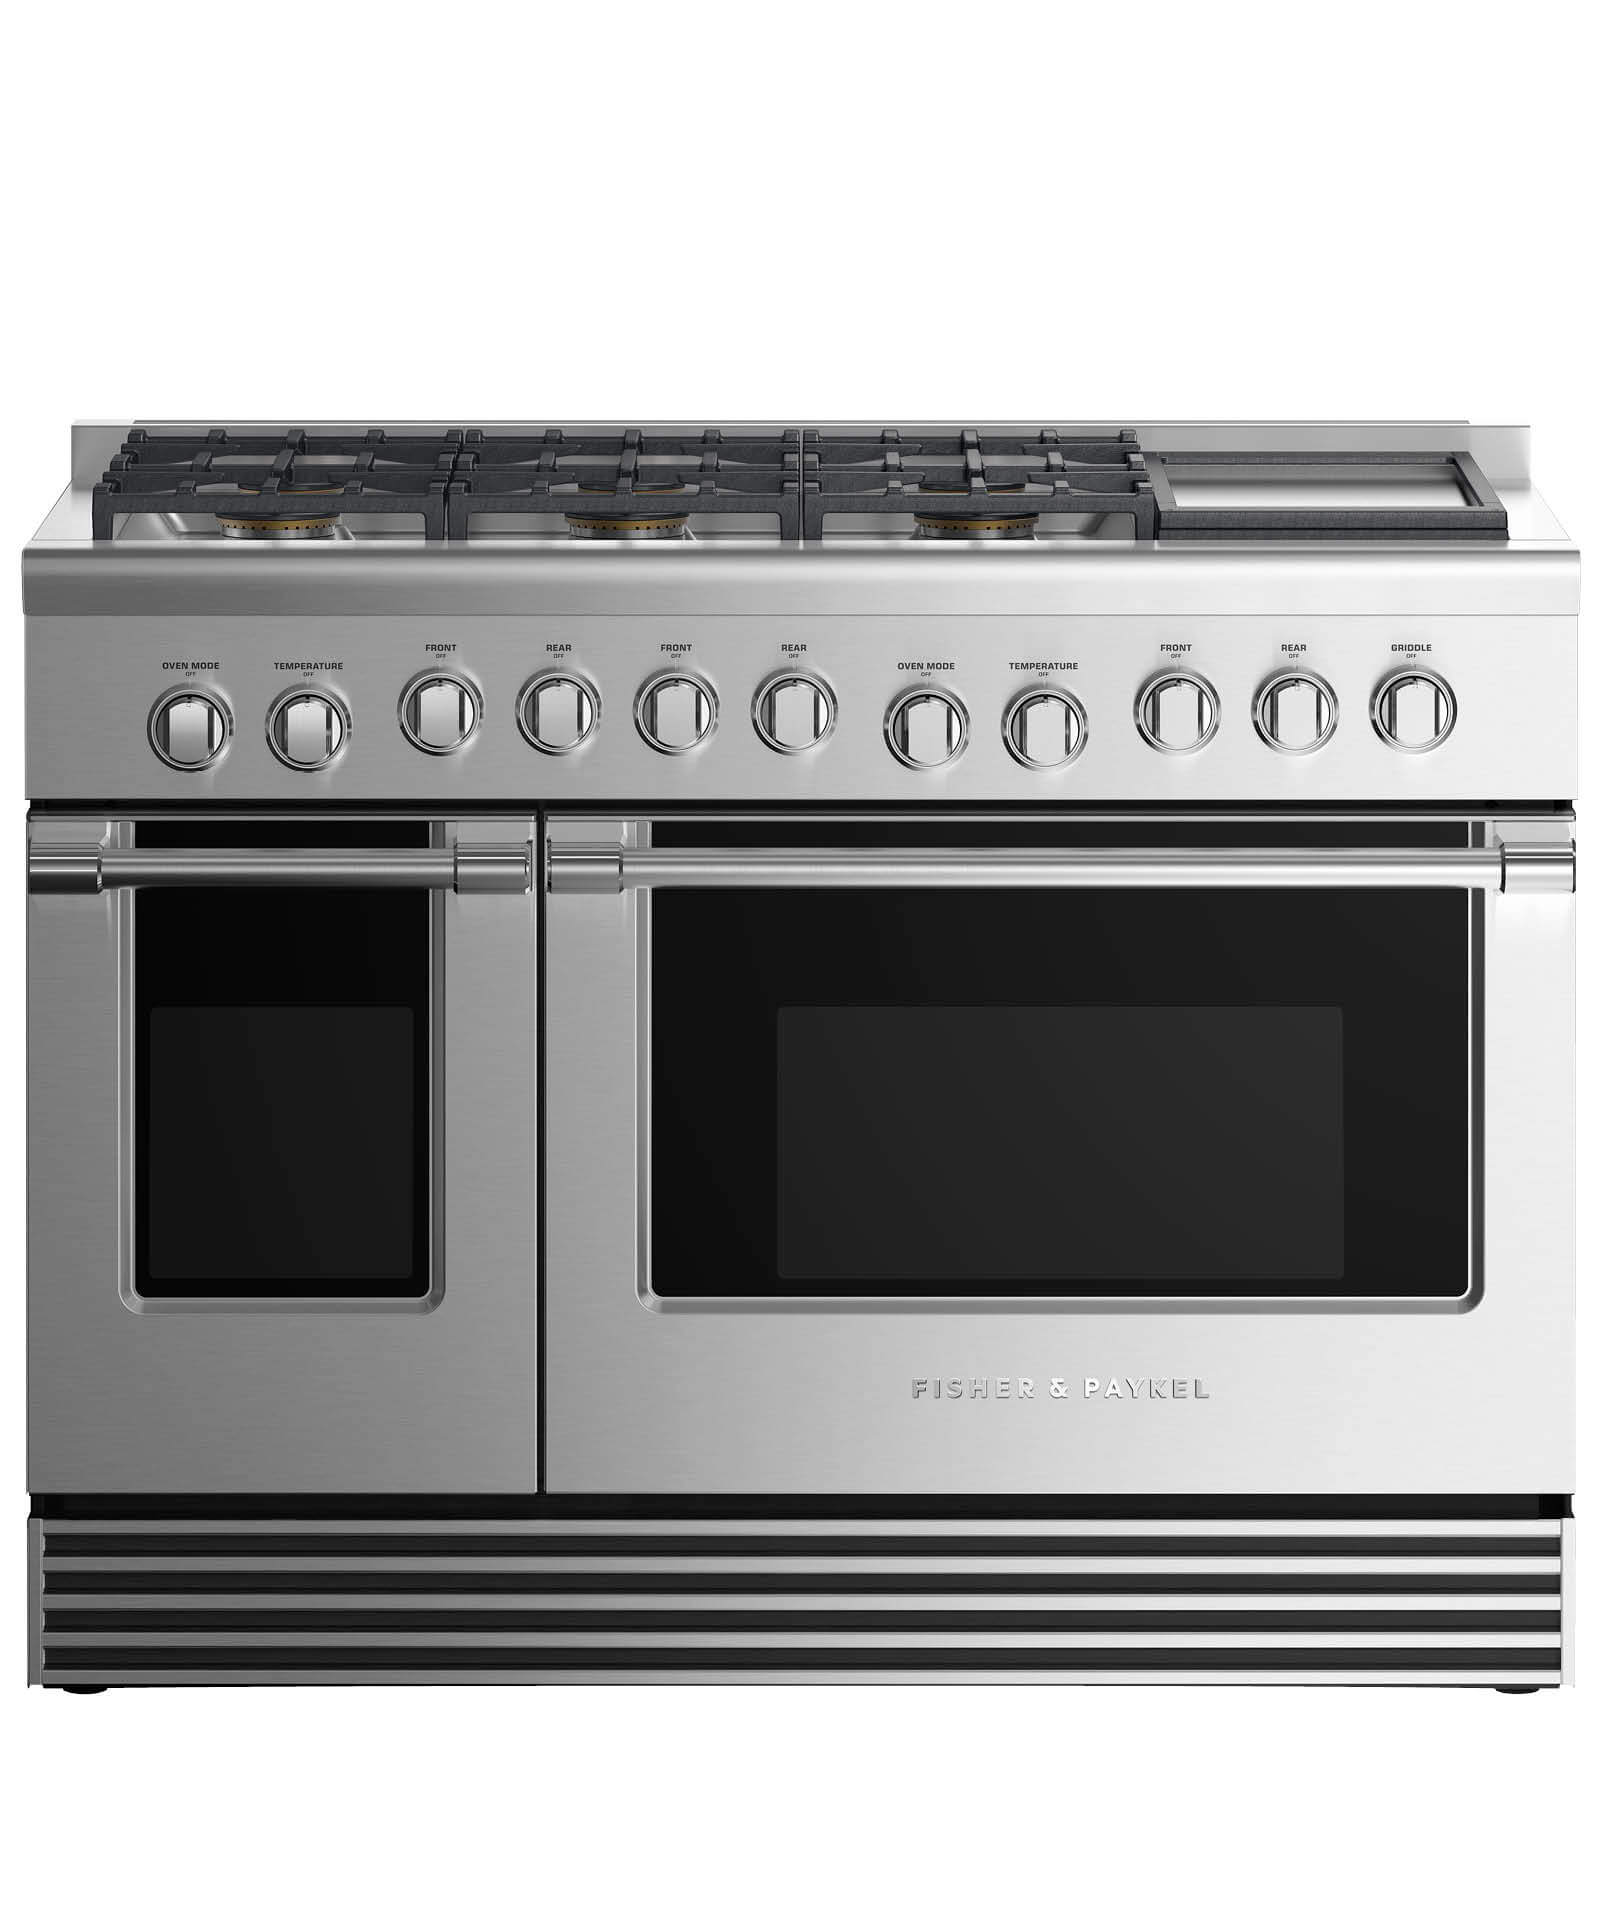 "Fisher and Paykel Dual Fuel Range 48"", 6 Burners with Griddle (LPG)"